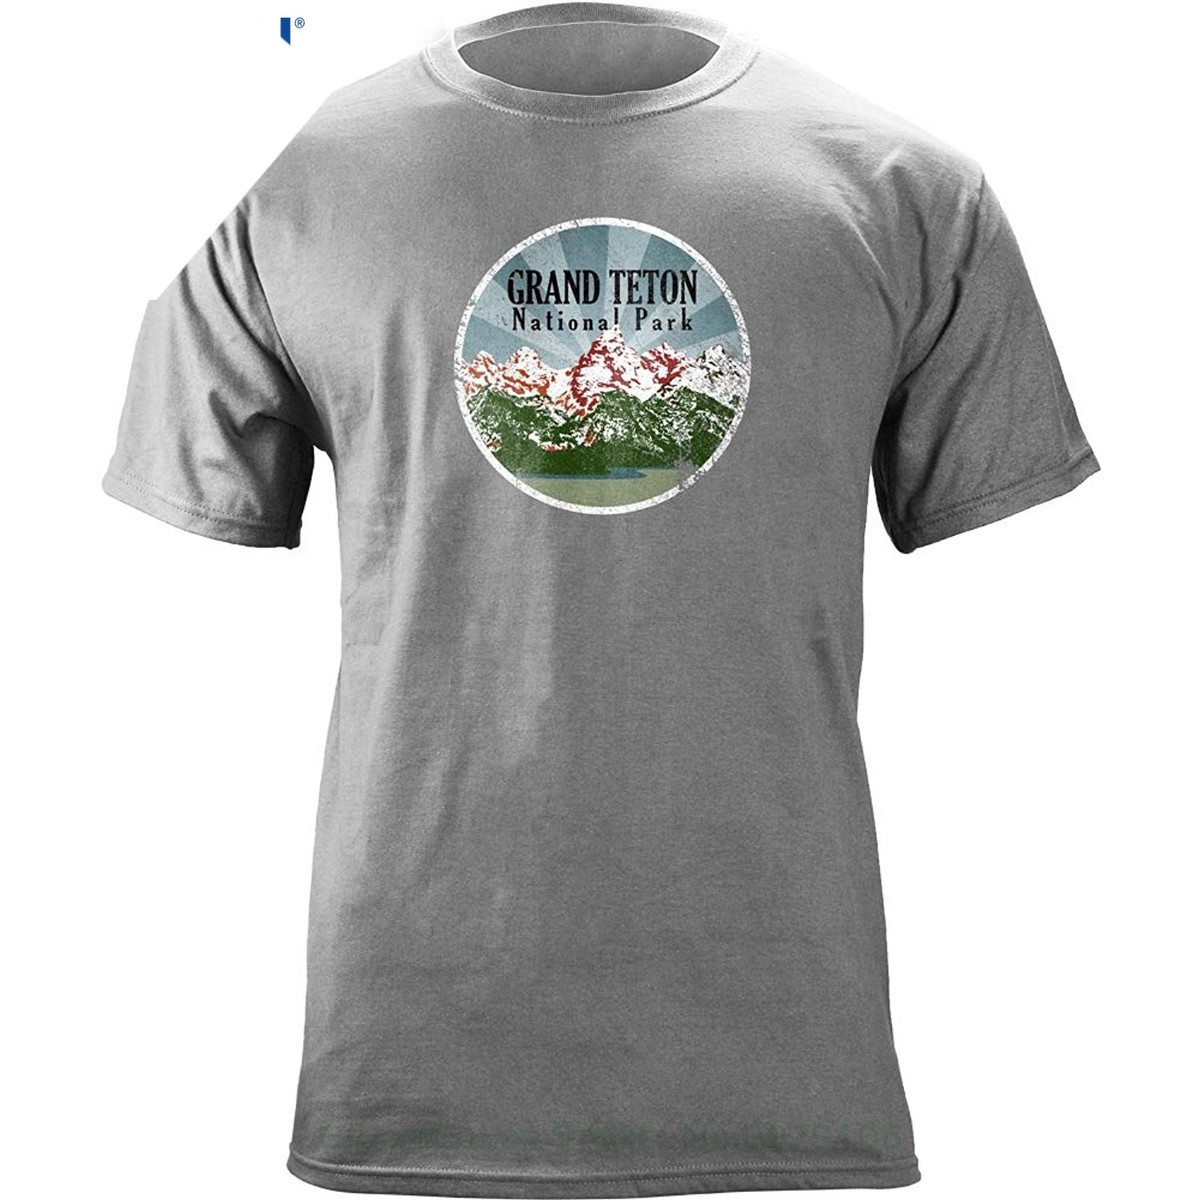 Sleeve T Shirt Summer Men Tee Tops Clothing Vintage Grand Teton National Park 80 39 s T shirt Cotton Casual in T Shirts from Men 39 s Clothing